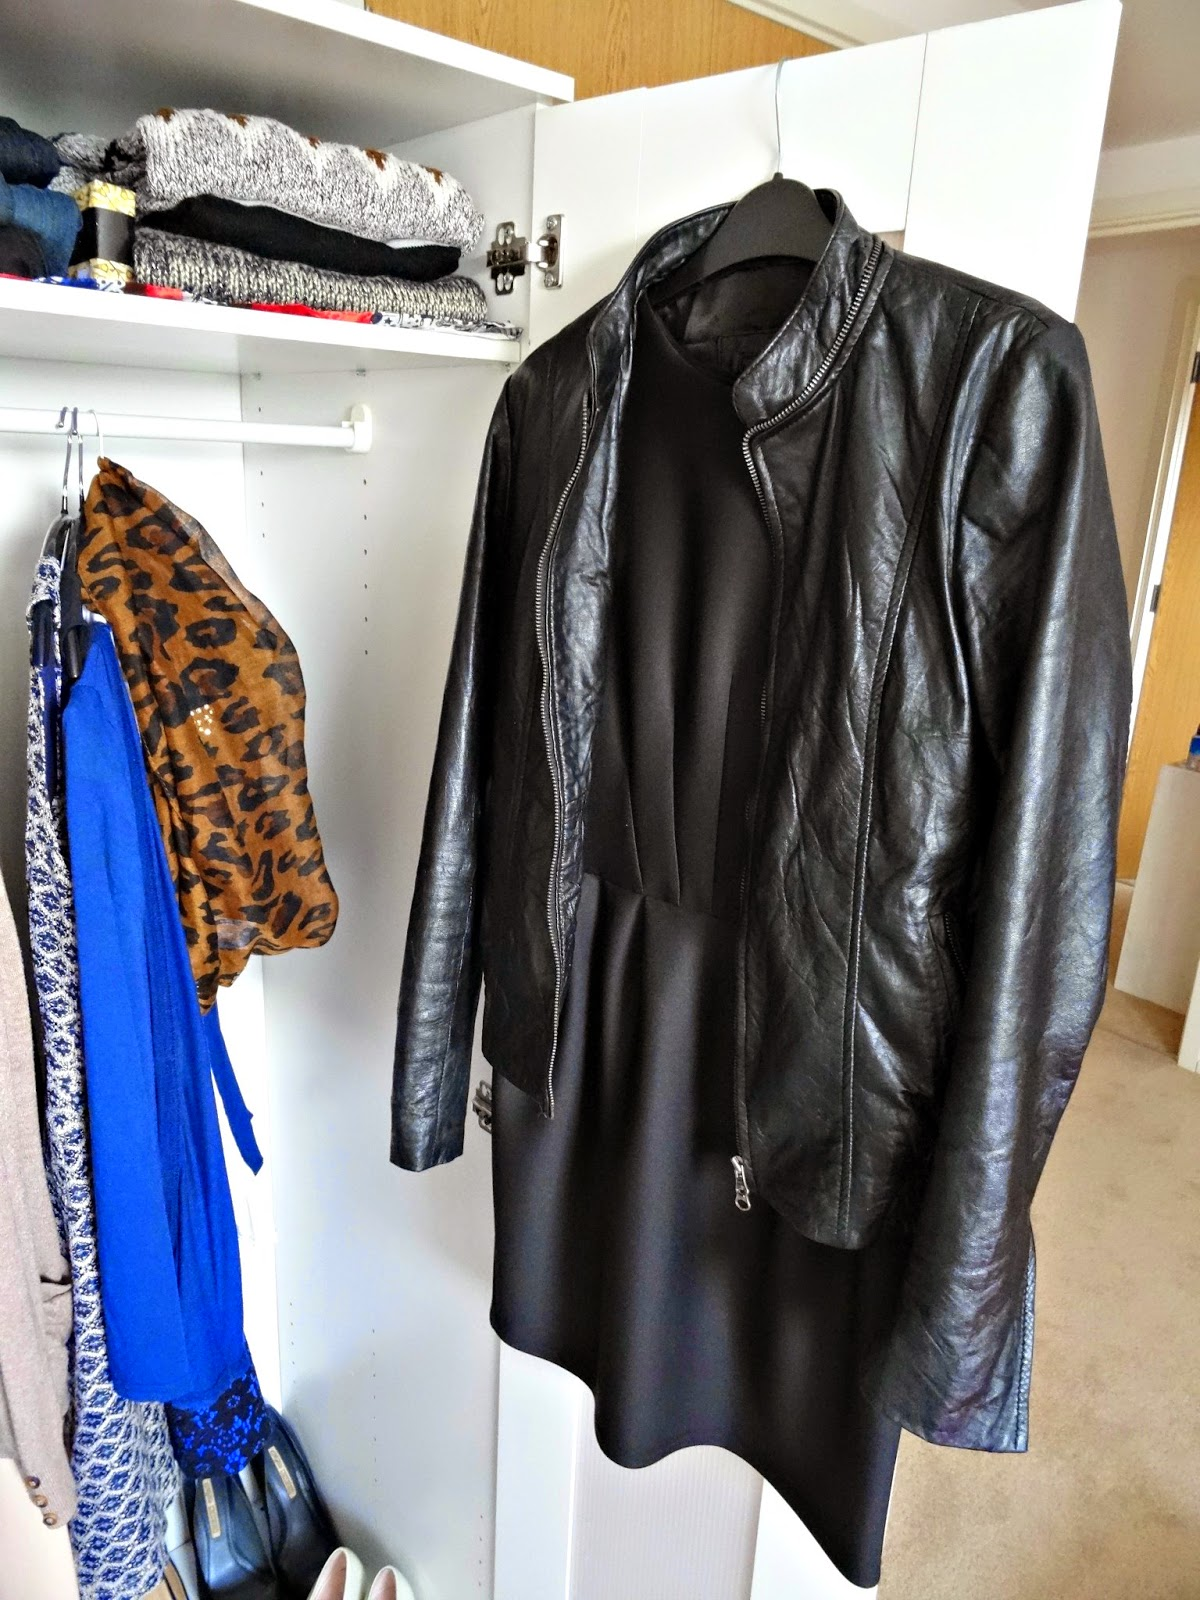 Leather jacket and dress